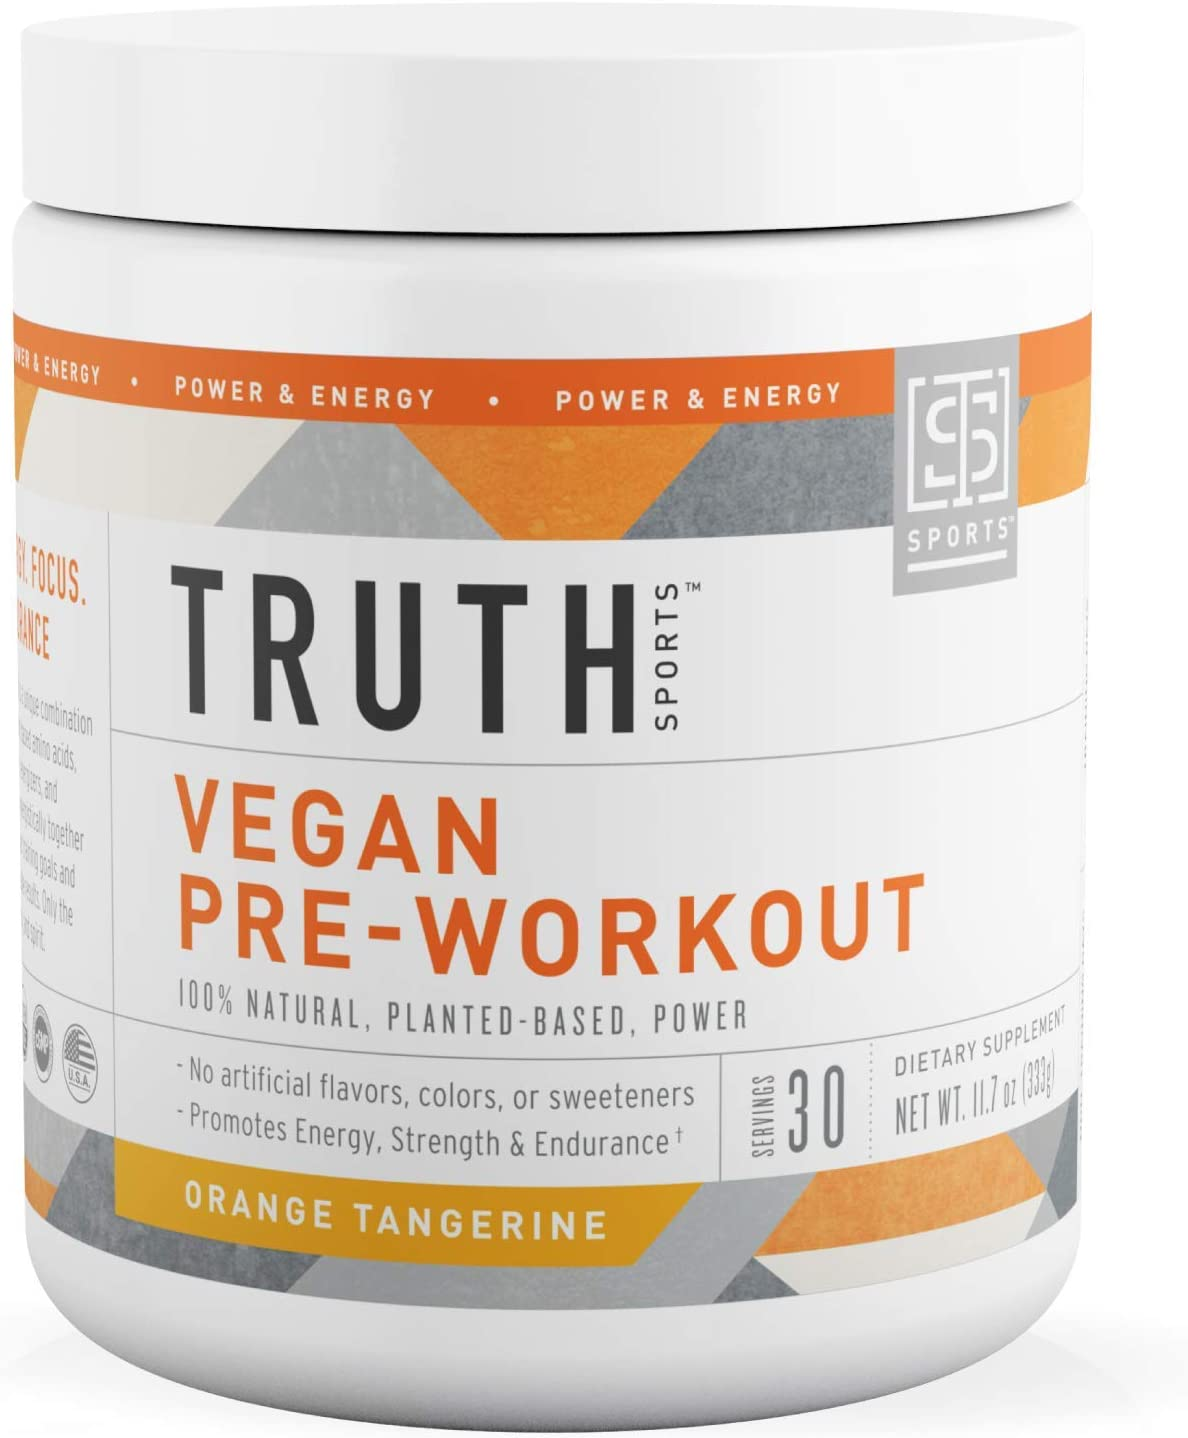 All Natural PreWorkout Powder- Plant Based, Keto Vegan Friendly Pre Workout – Energy, Focus Performance – Boost Muscle Strength Endurance- Truth Nutrition Orange Tangerine, 30 Servings